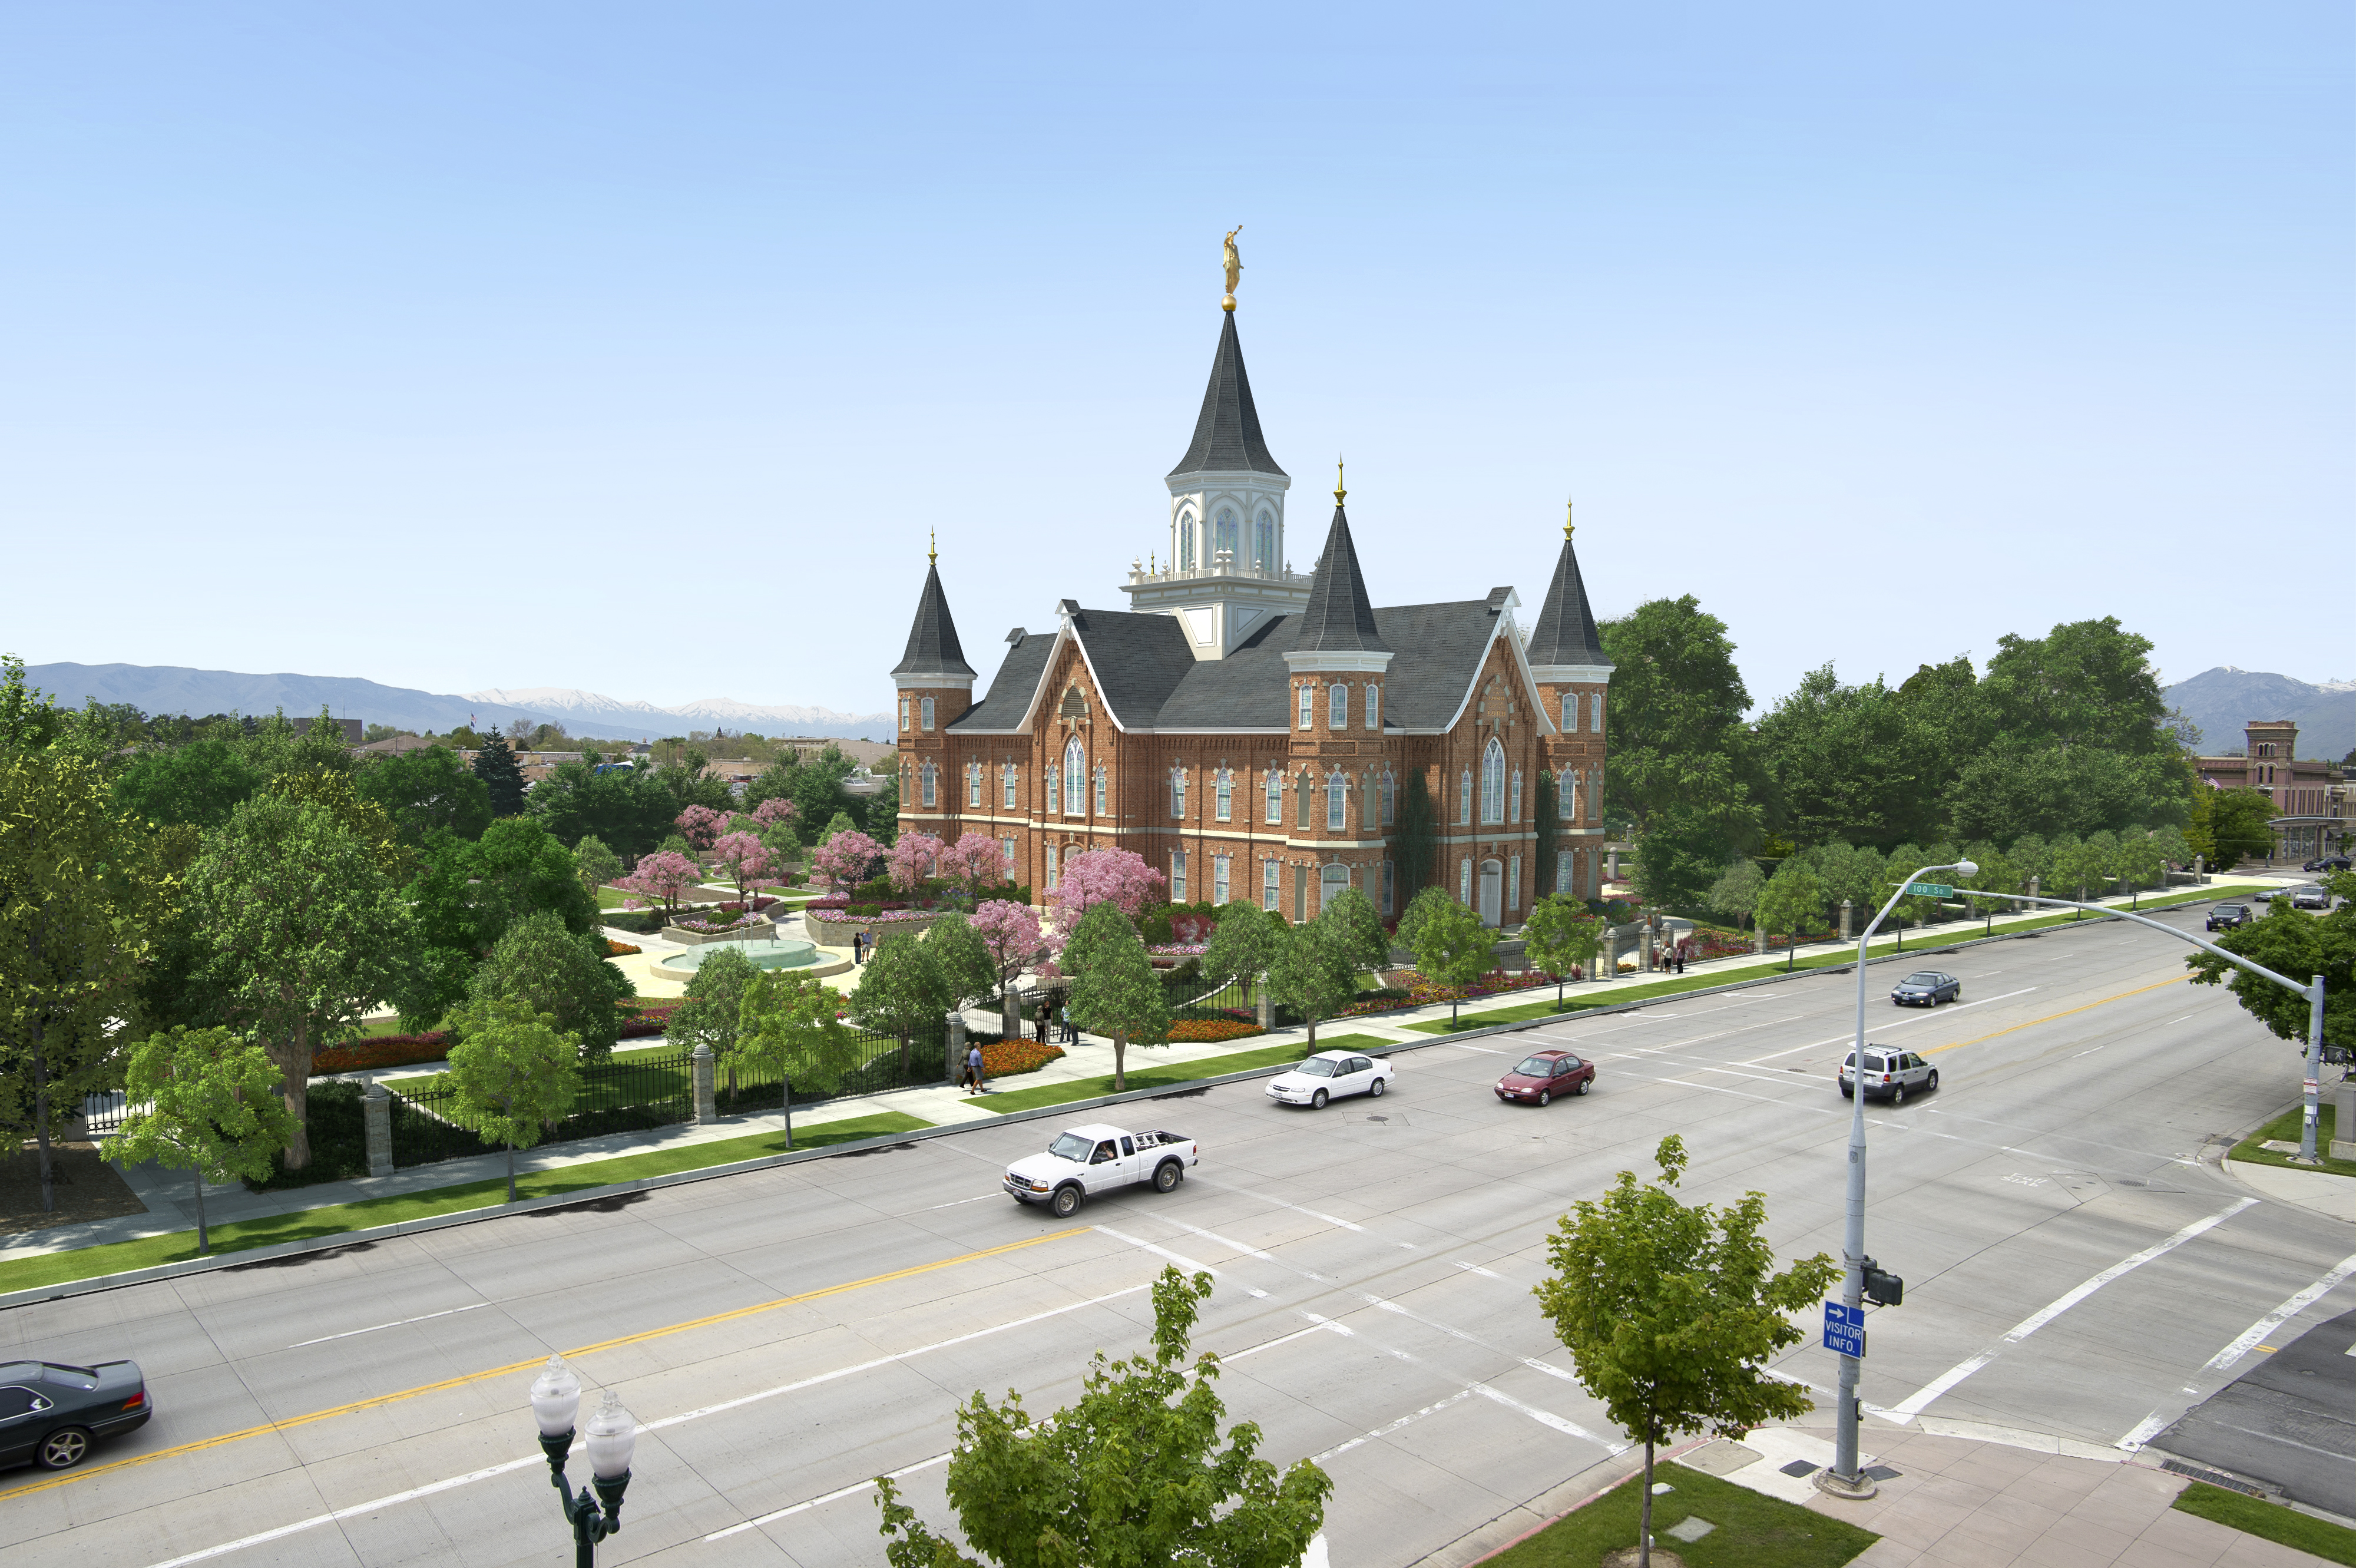 An artist illustrated a rendering of the Provo City Center Temple. The Church of Jesus Christ of Latter-day Saints has more than 140 temples operating worldwide. (LDS Newsroom)